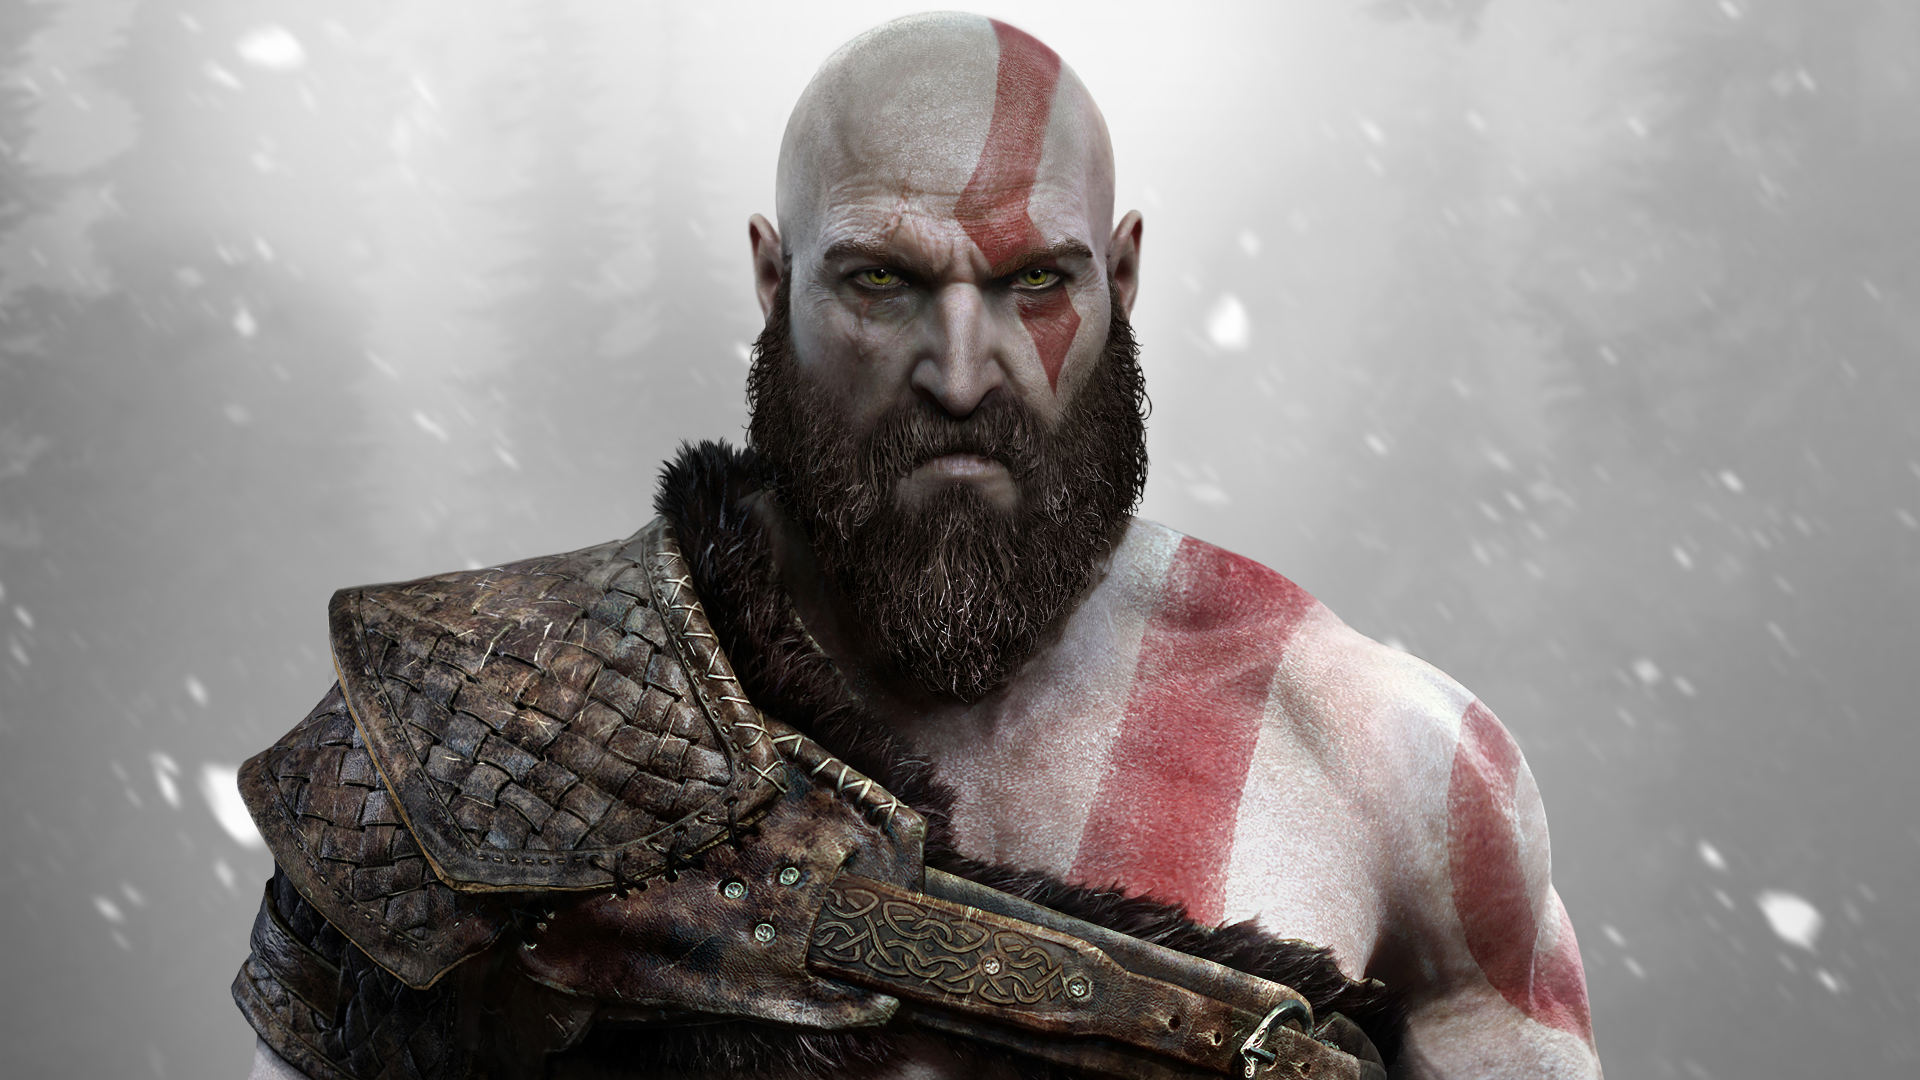 1920x1080 God Of War Kratos Sony Santa Monica 1080p Laptop